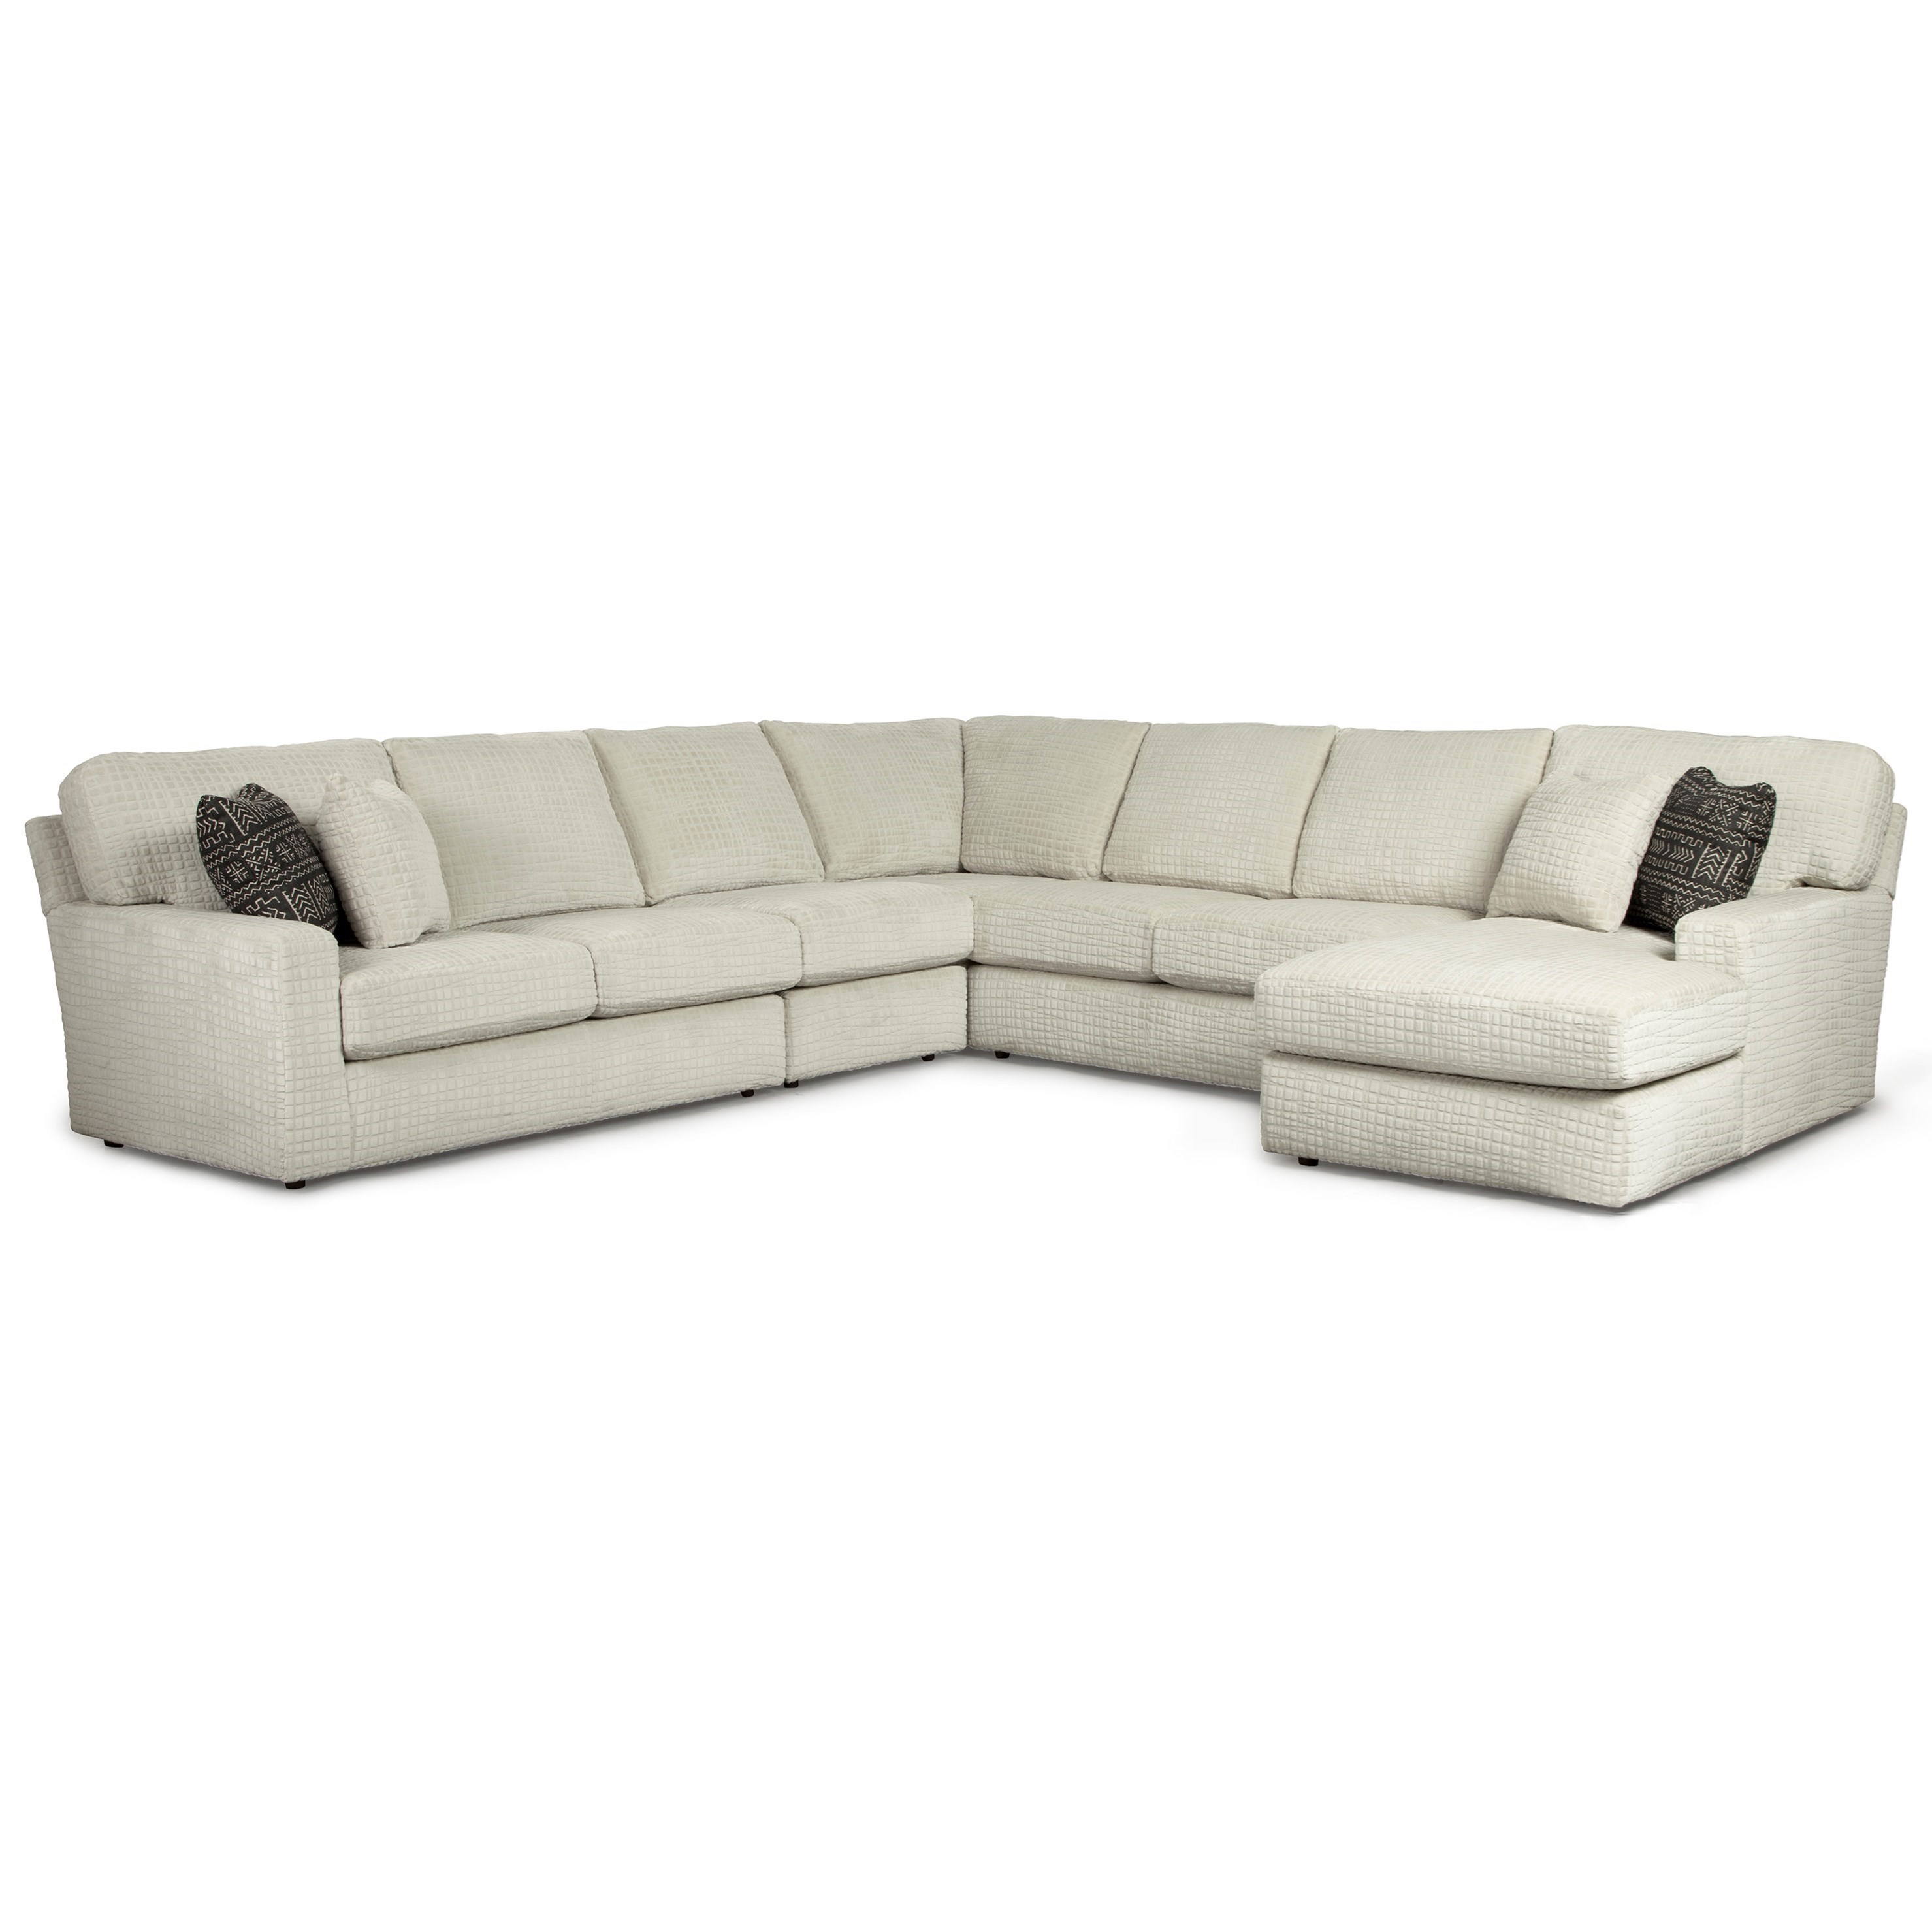 Dovely 5 Pc Sectional Sofa w/ RAF Chaise by Best Home Furnishings at Best Home Furnishings